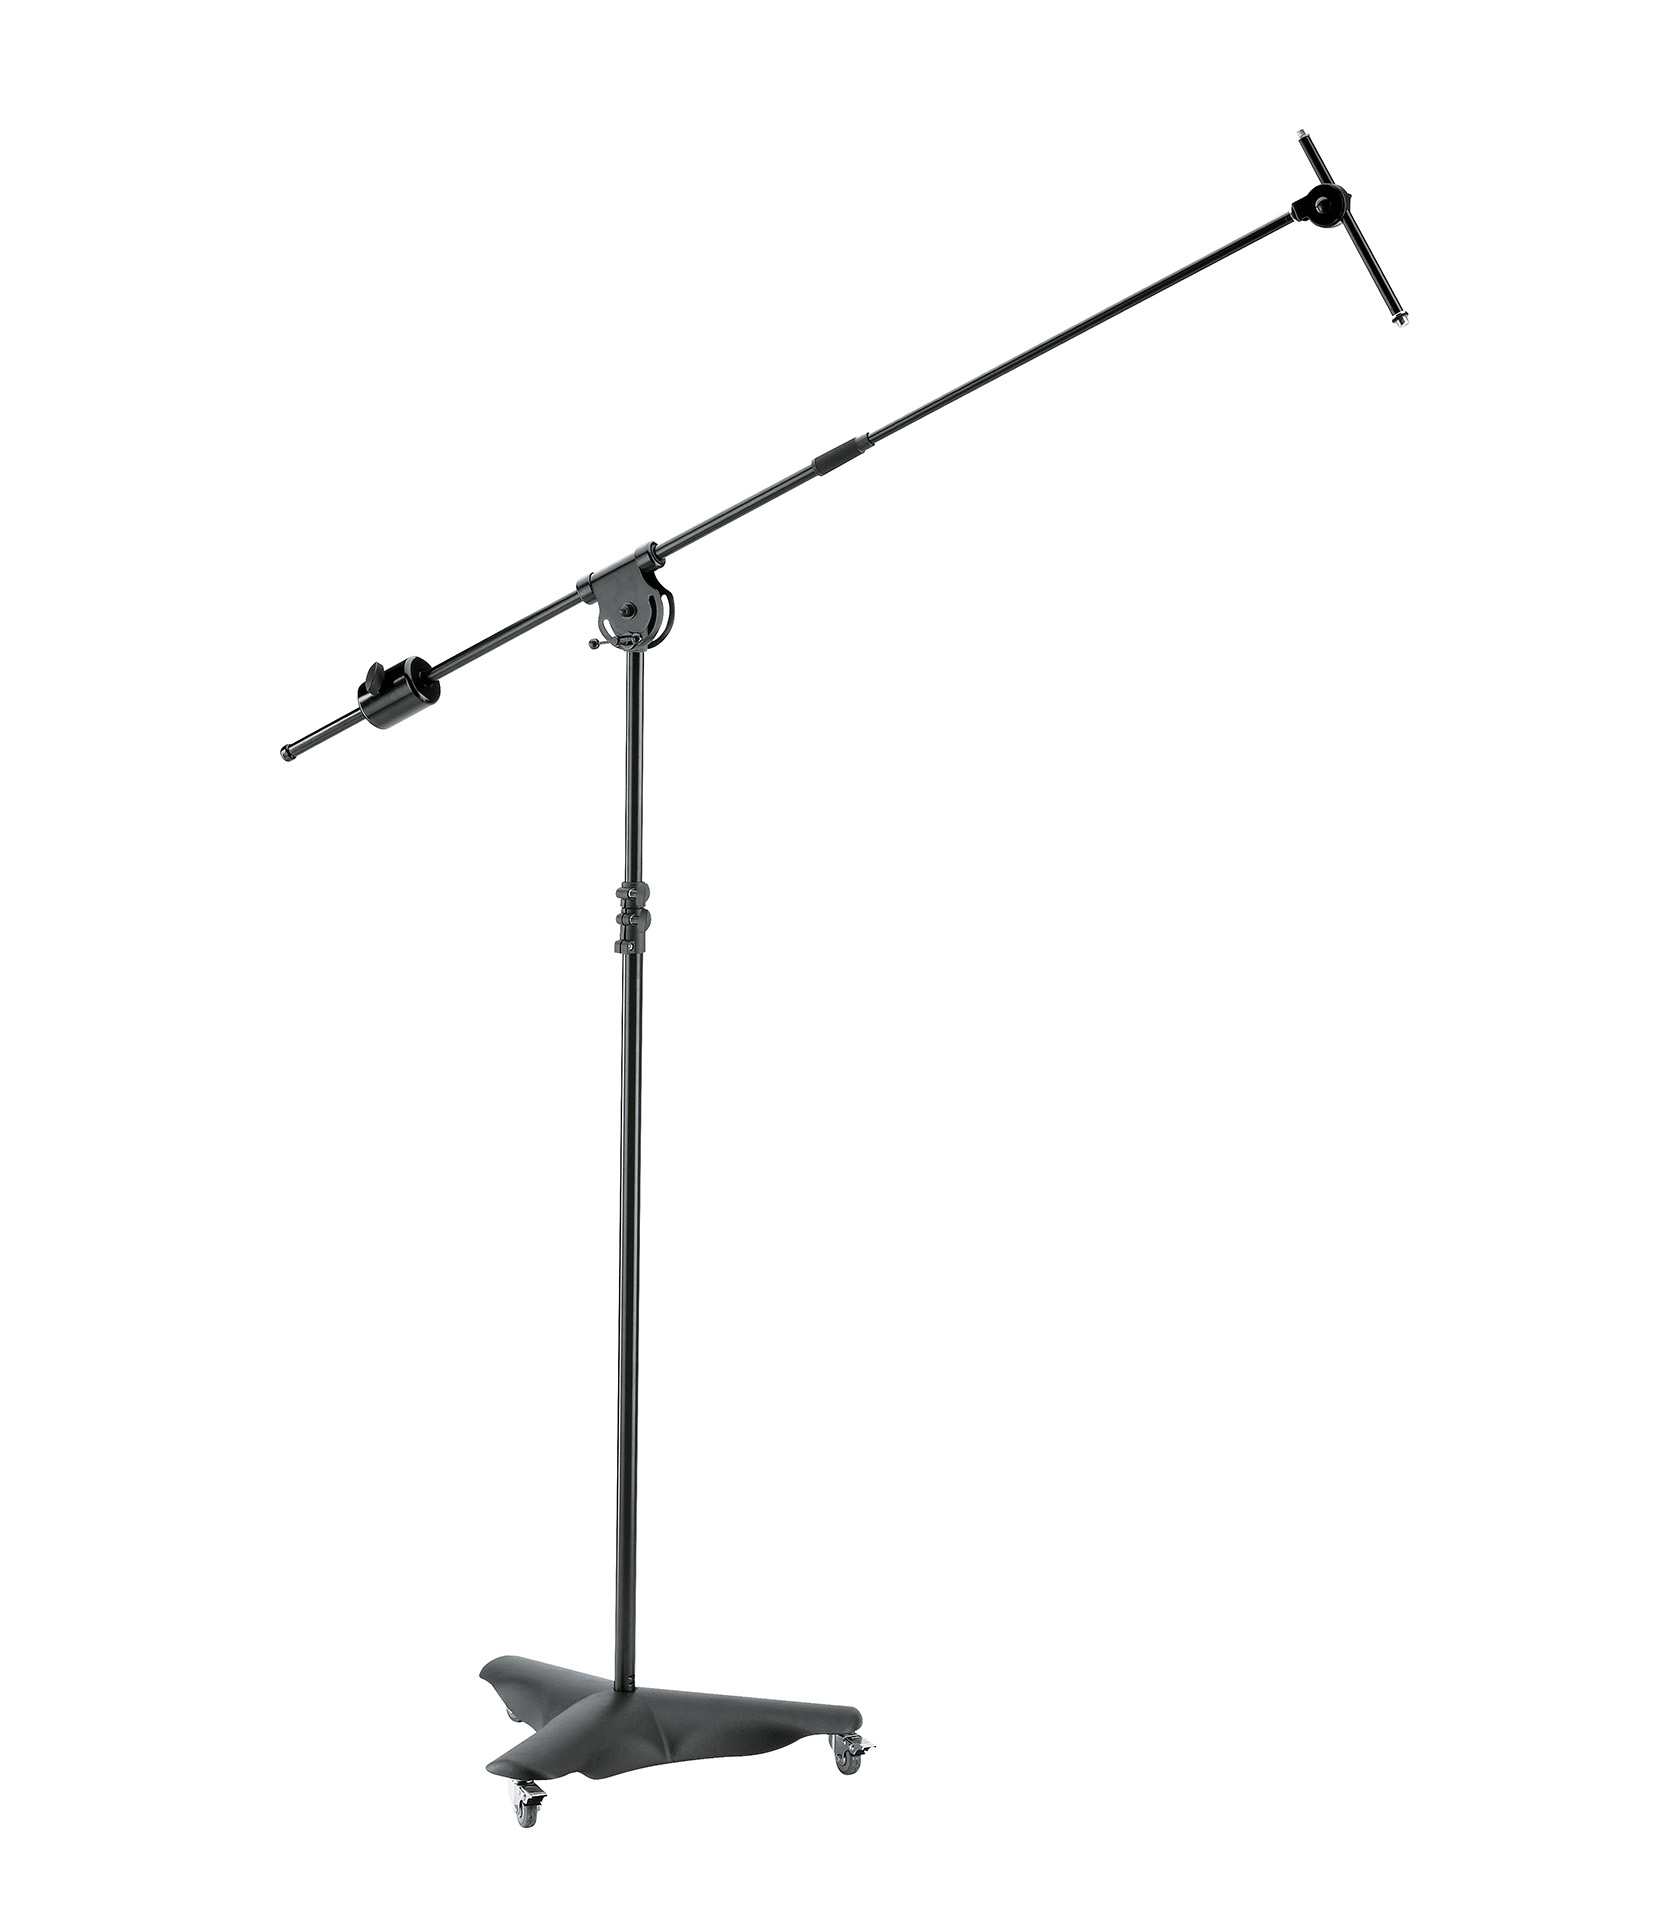 K&M - 21430 500 55 Overhead microphone standblack - Melody House Musical Instruments